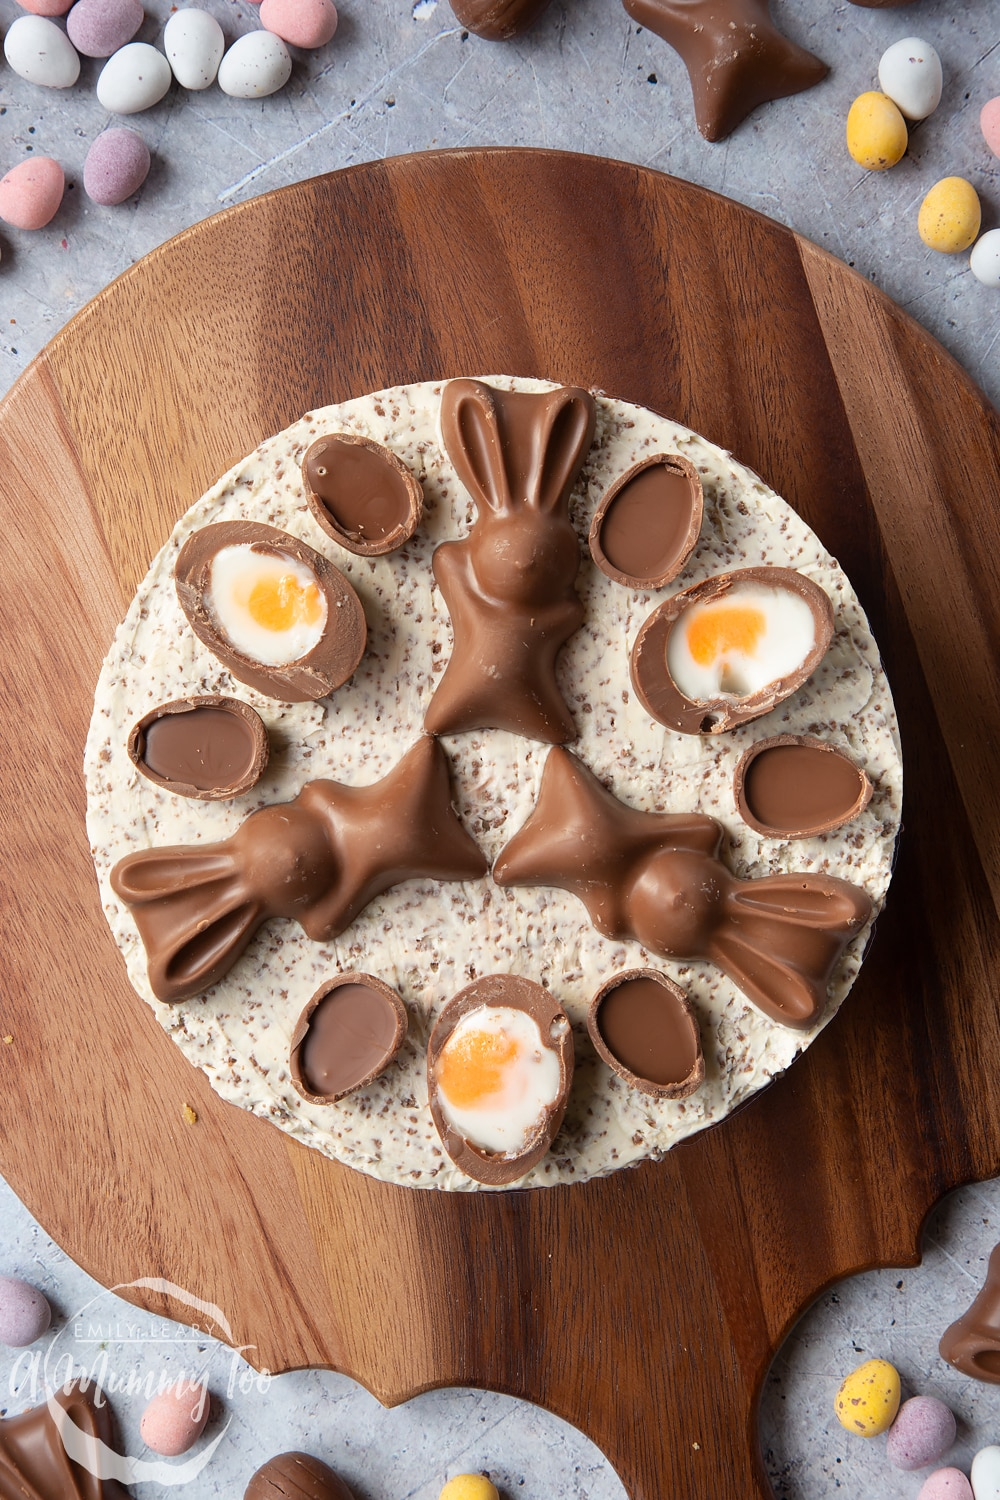 No-bake Easter cheesecake shown from above. The cheesecake is topped with creme eggs and chocolate bunnies.